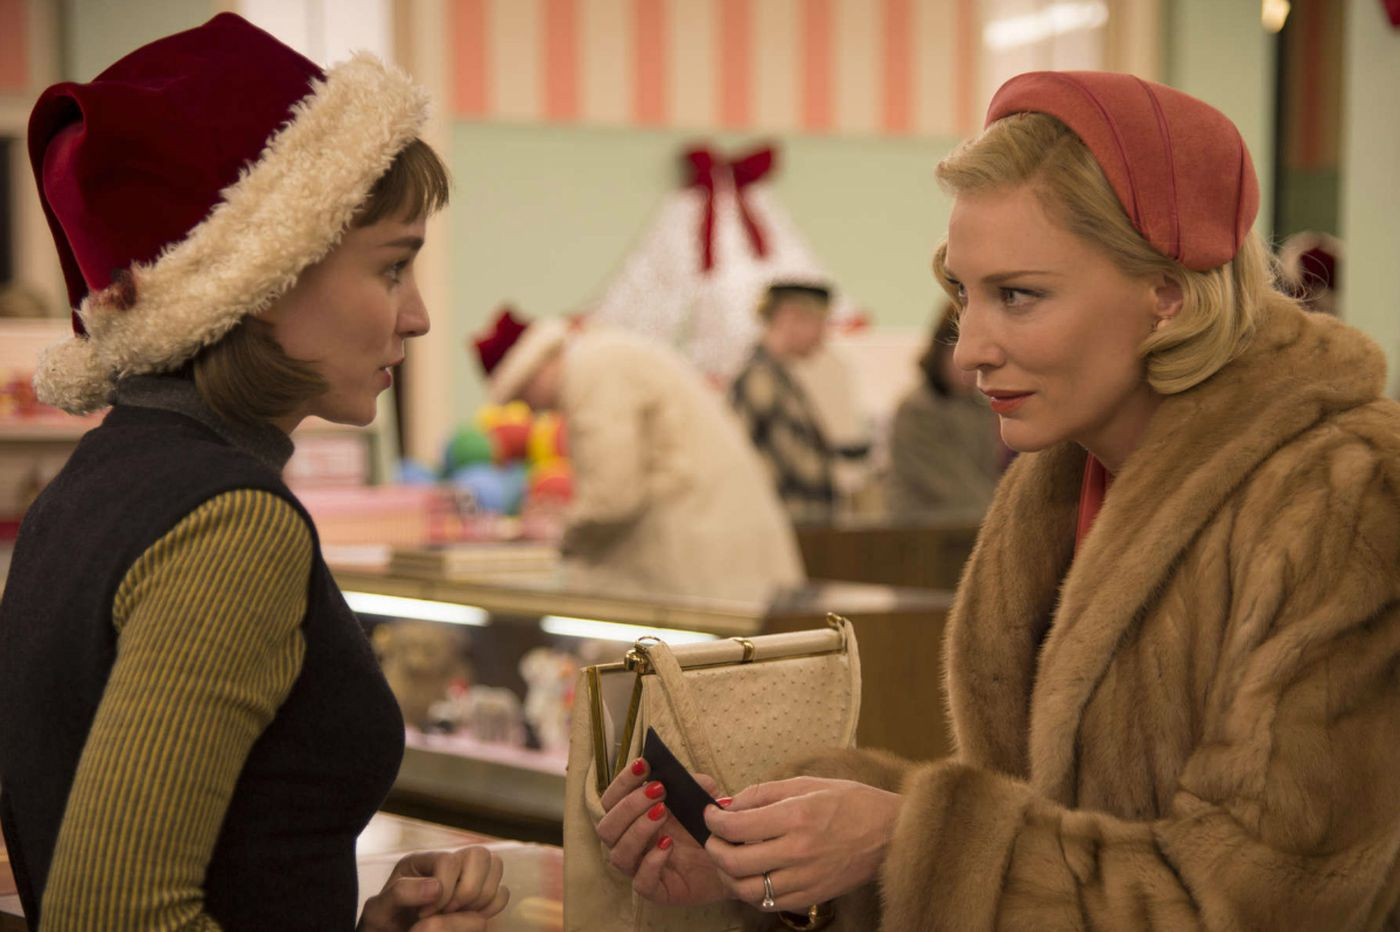 'Carol': Muted, reflective, extraordinary